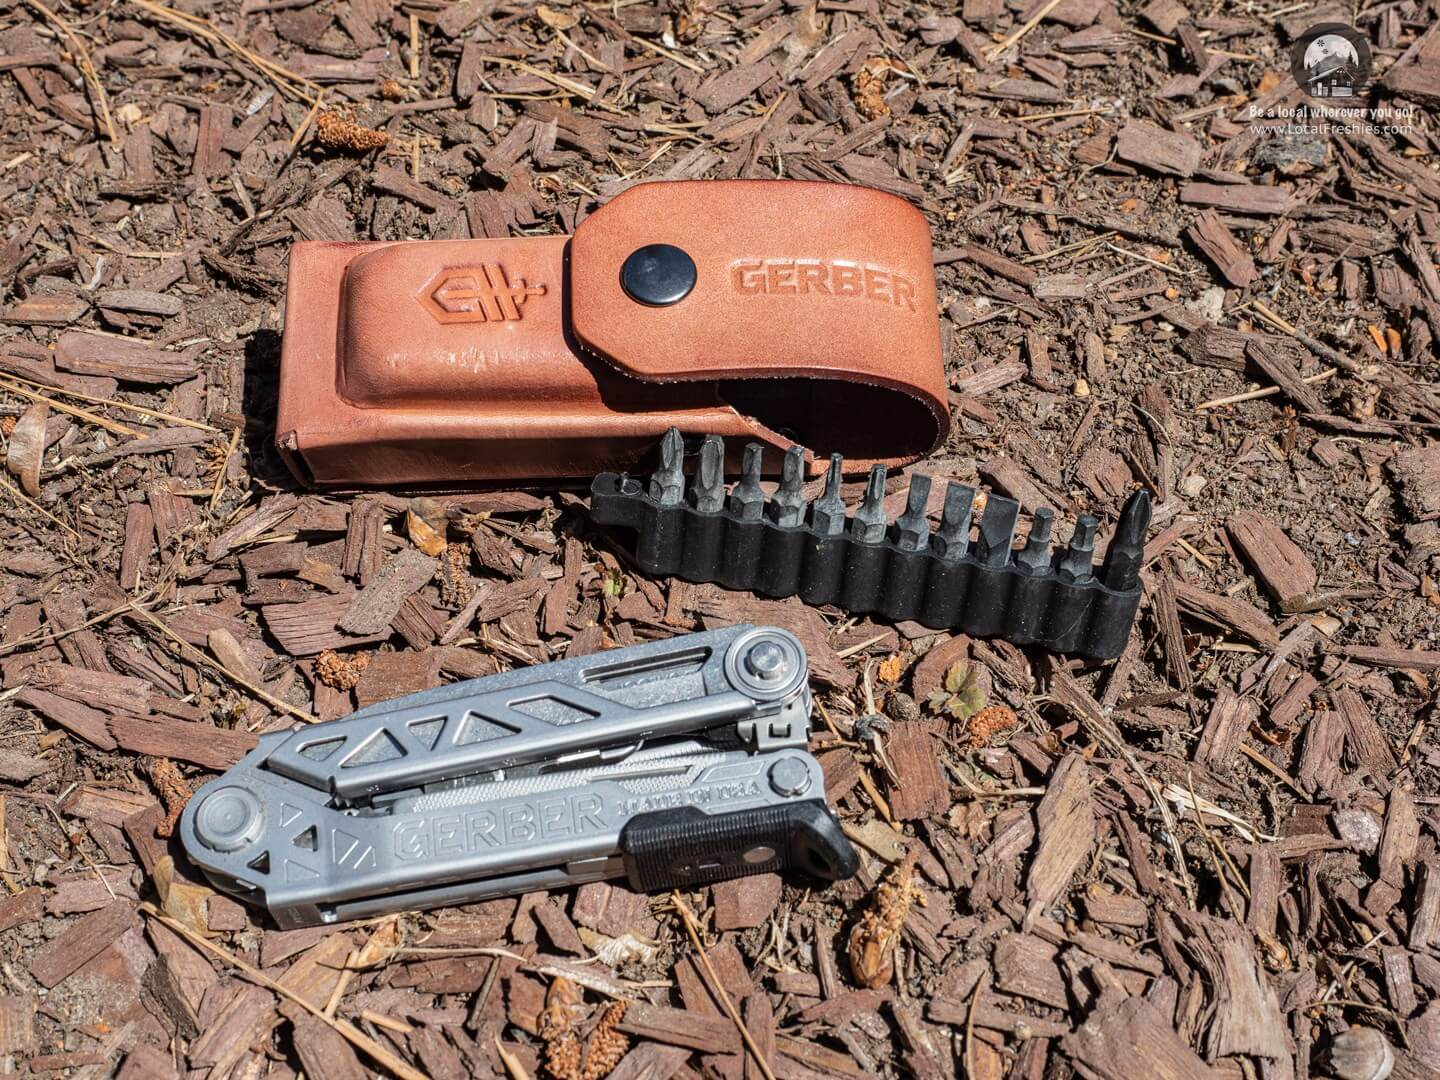 Gerber Center Drive Plus with leather sheath and tool bits